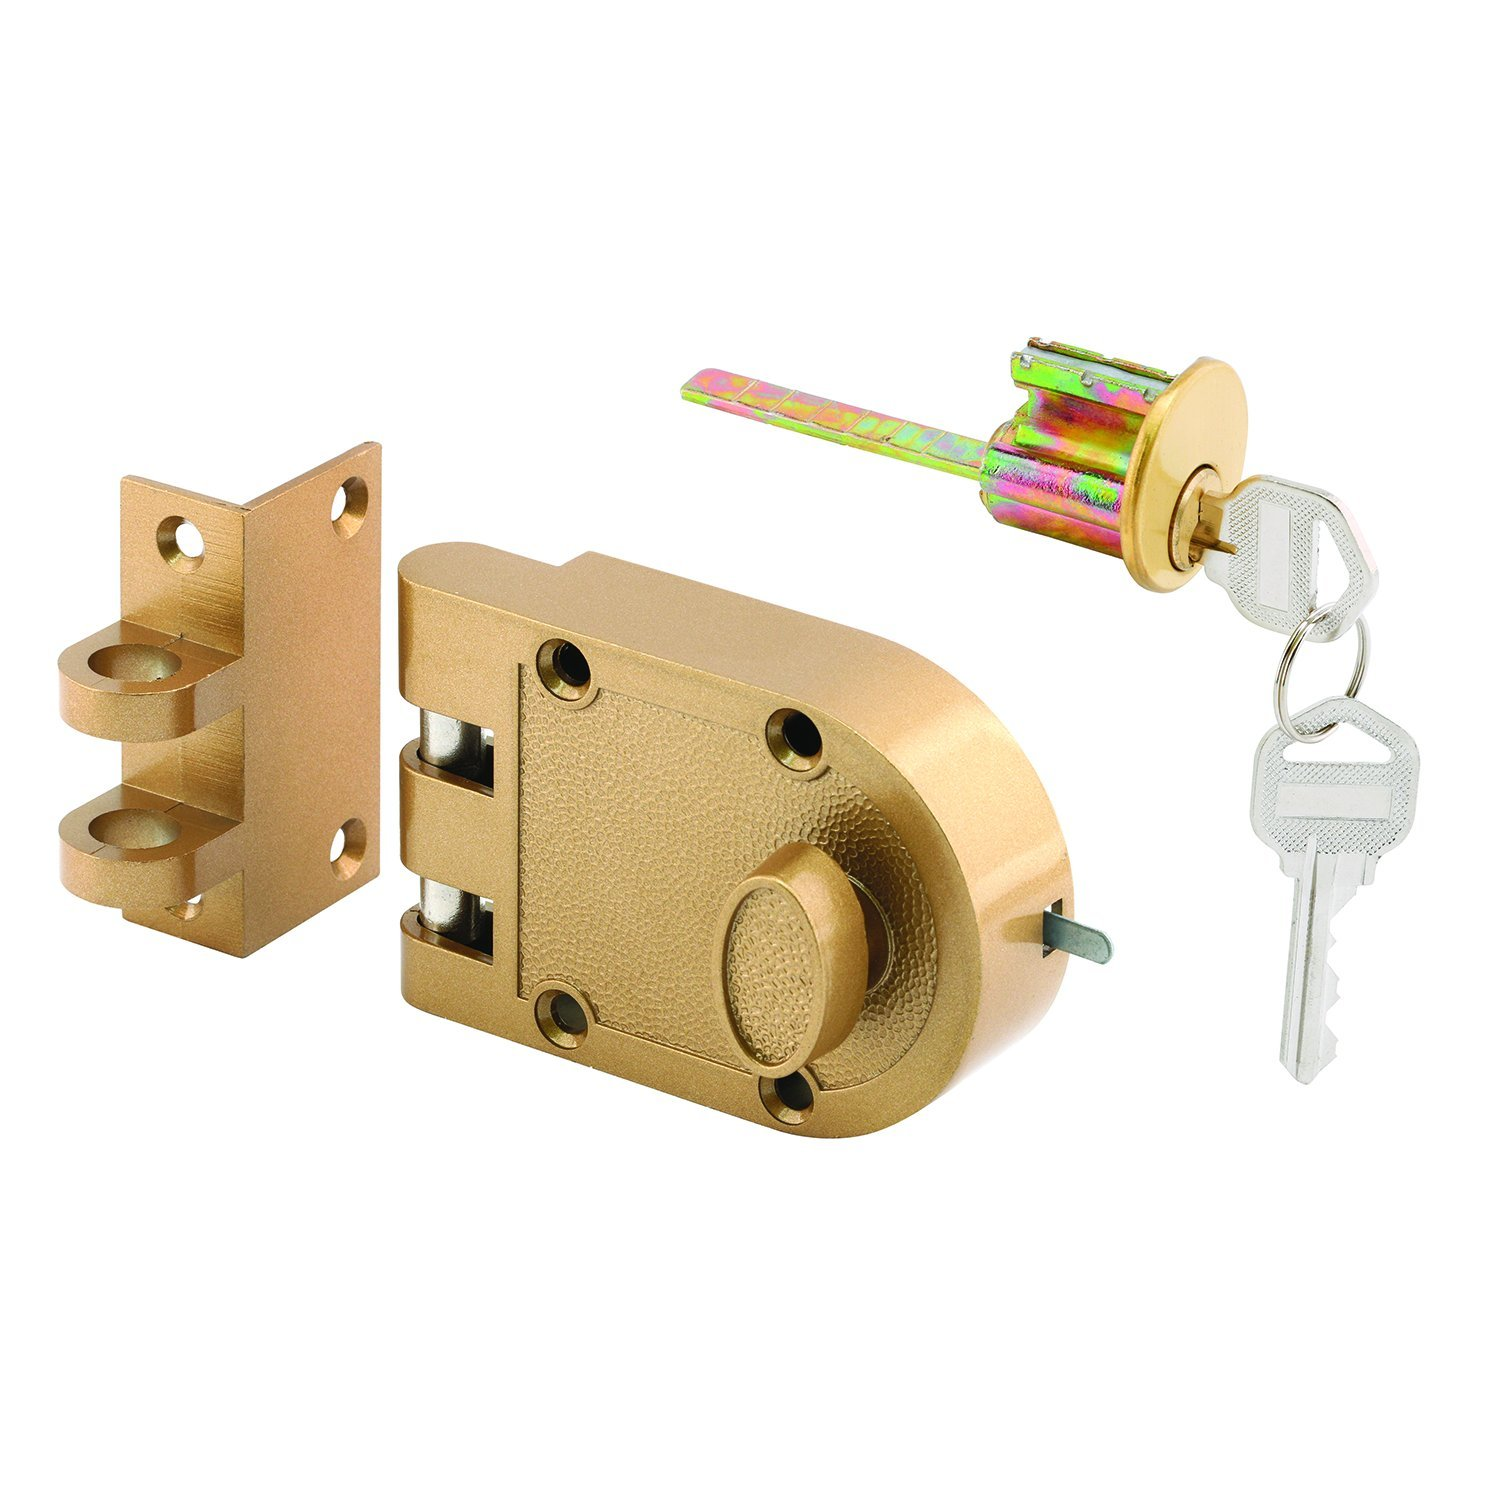 Prime-Line U 9970 Jimmy-Resistant Deadlock, Diecast, Brass Color, Angle Strike, Single Cylinder